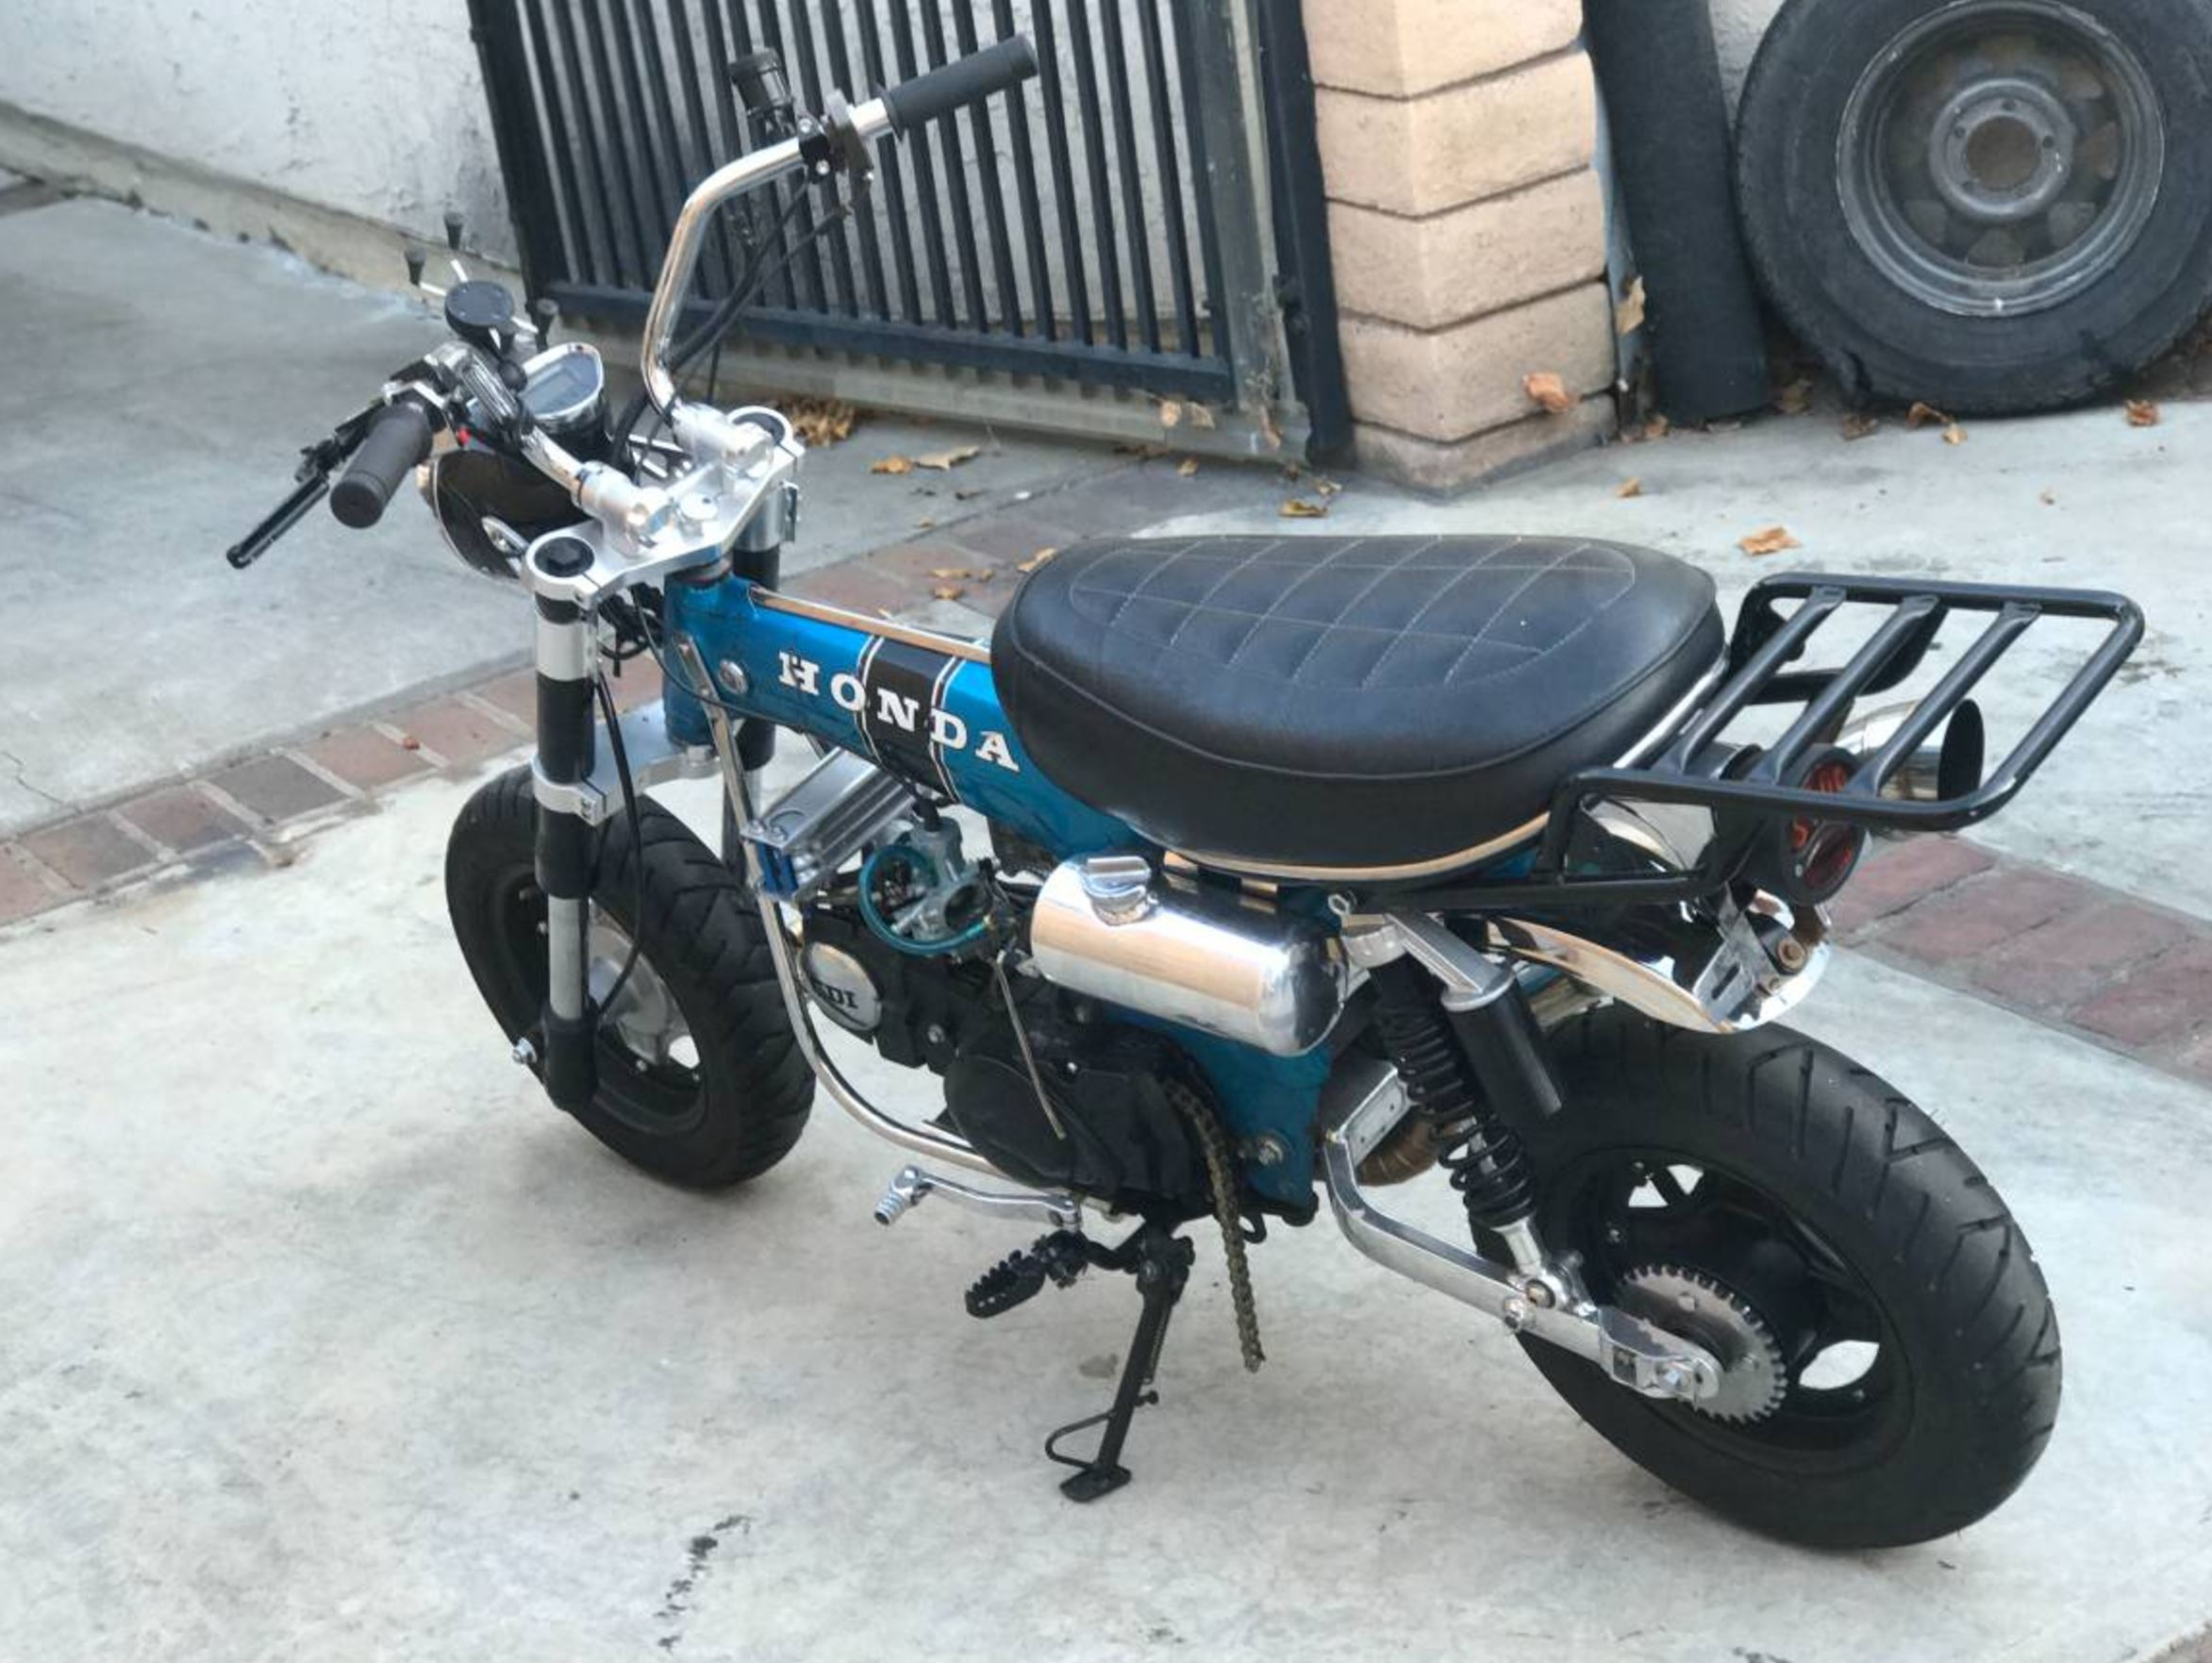 Double The Displacement 1979 Honda Ct70 Custom Bike Urious 1970 Mini Trail 50 Albeit It Begs Question Why Not Just Start With A Bigger If Performance Is Goal This